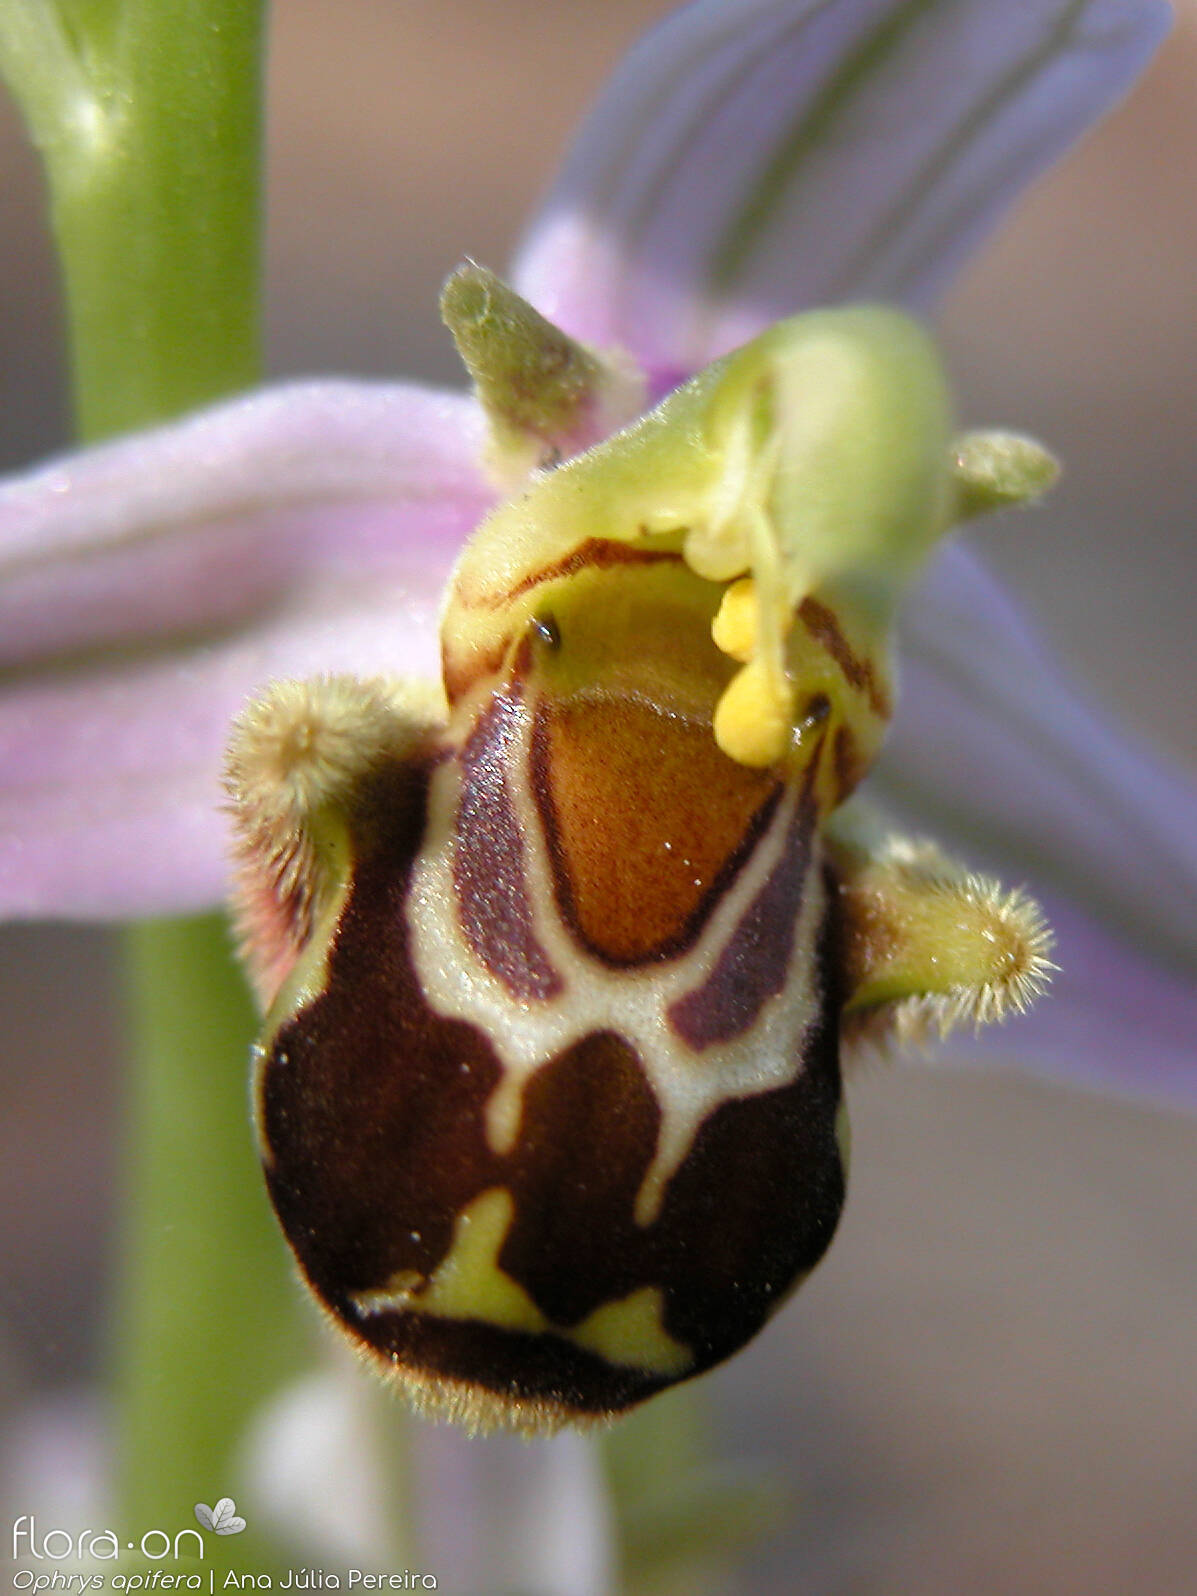 Ophrys apifera - Flor (close-up) | Ana Júlia Pereira; CC BY-NC 4.0